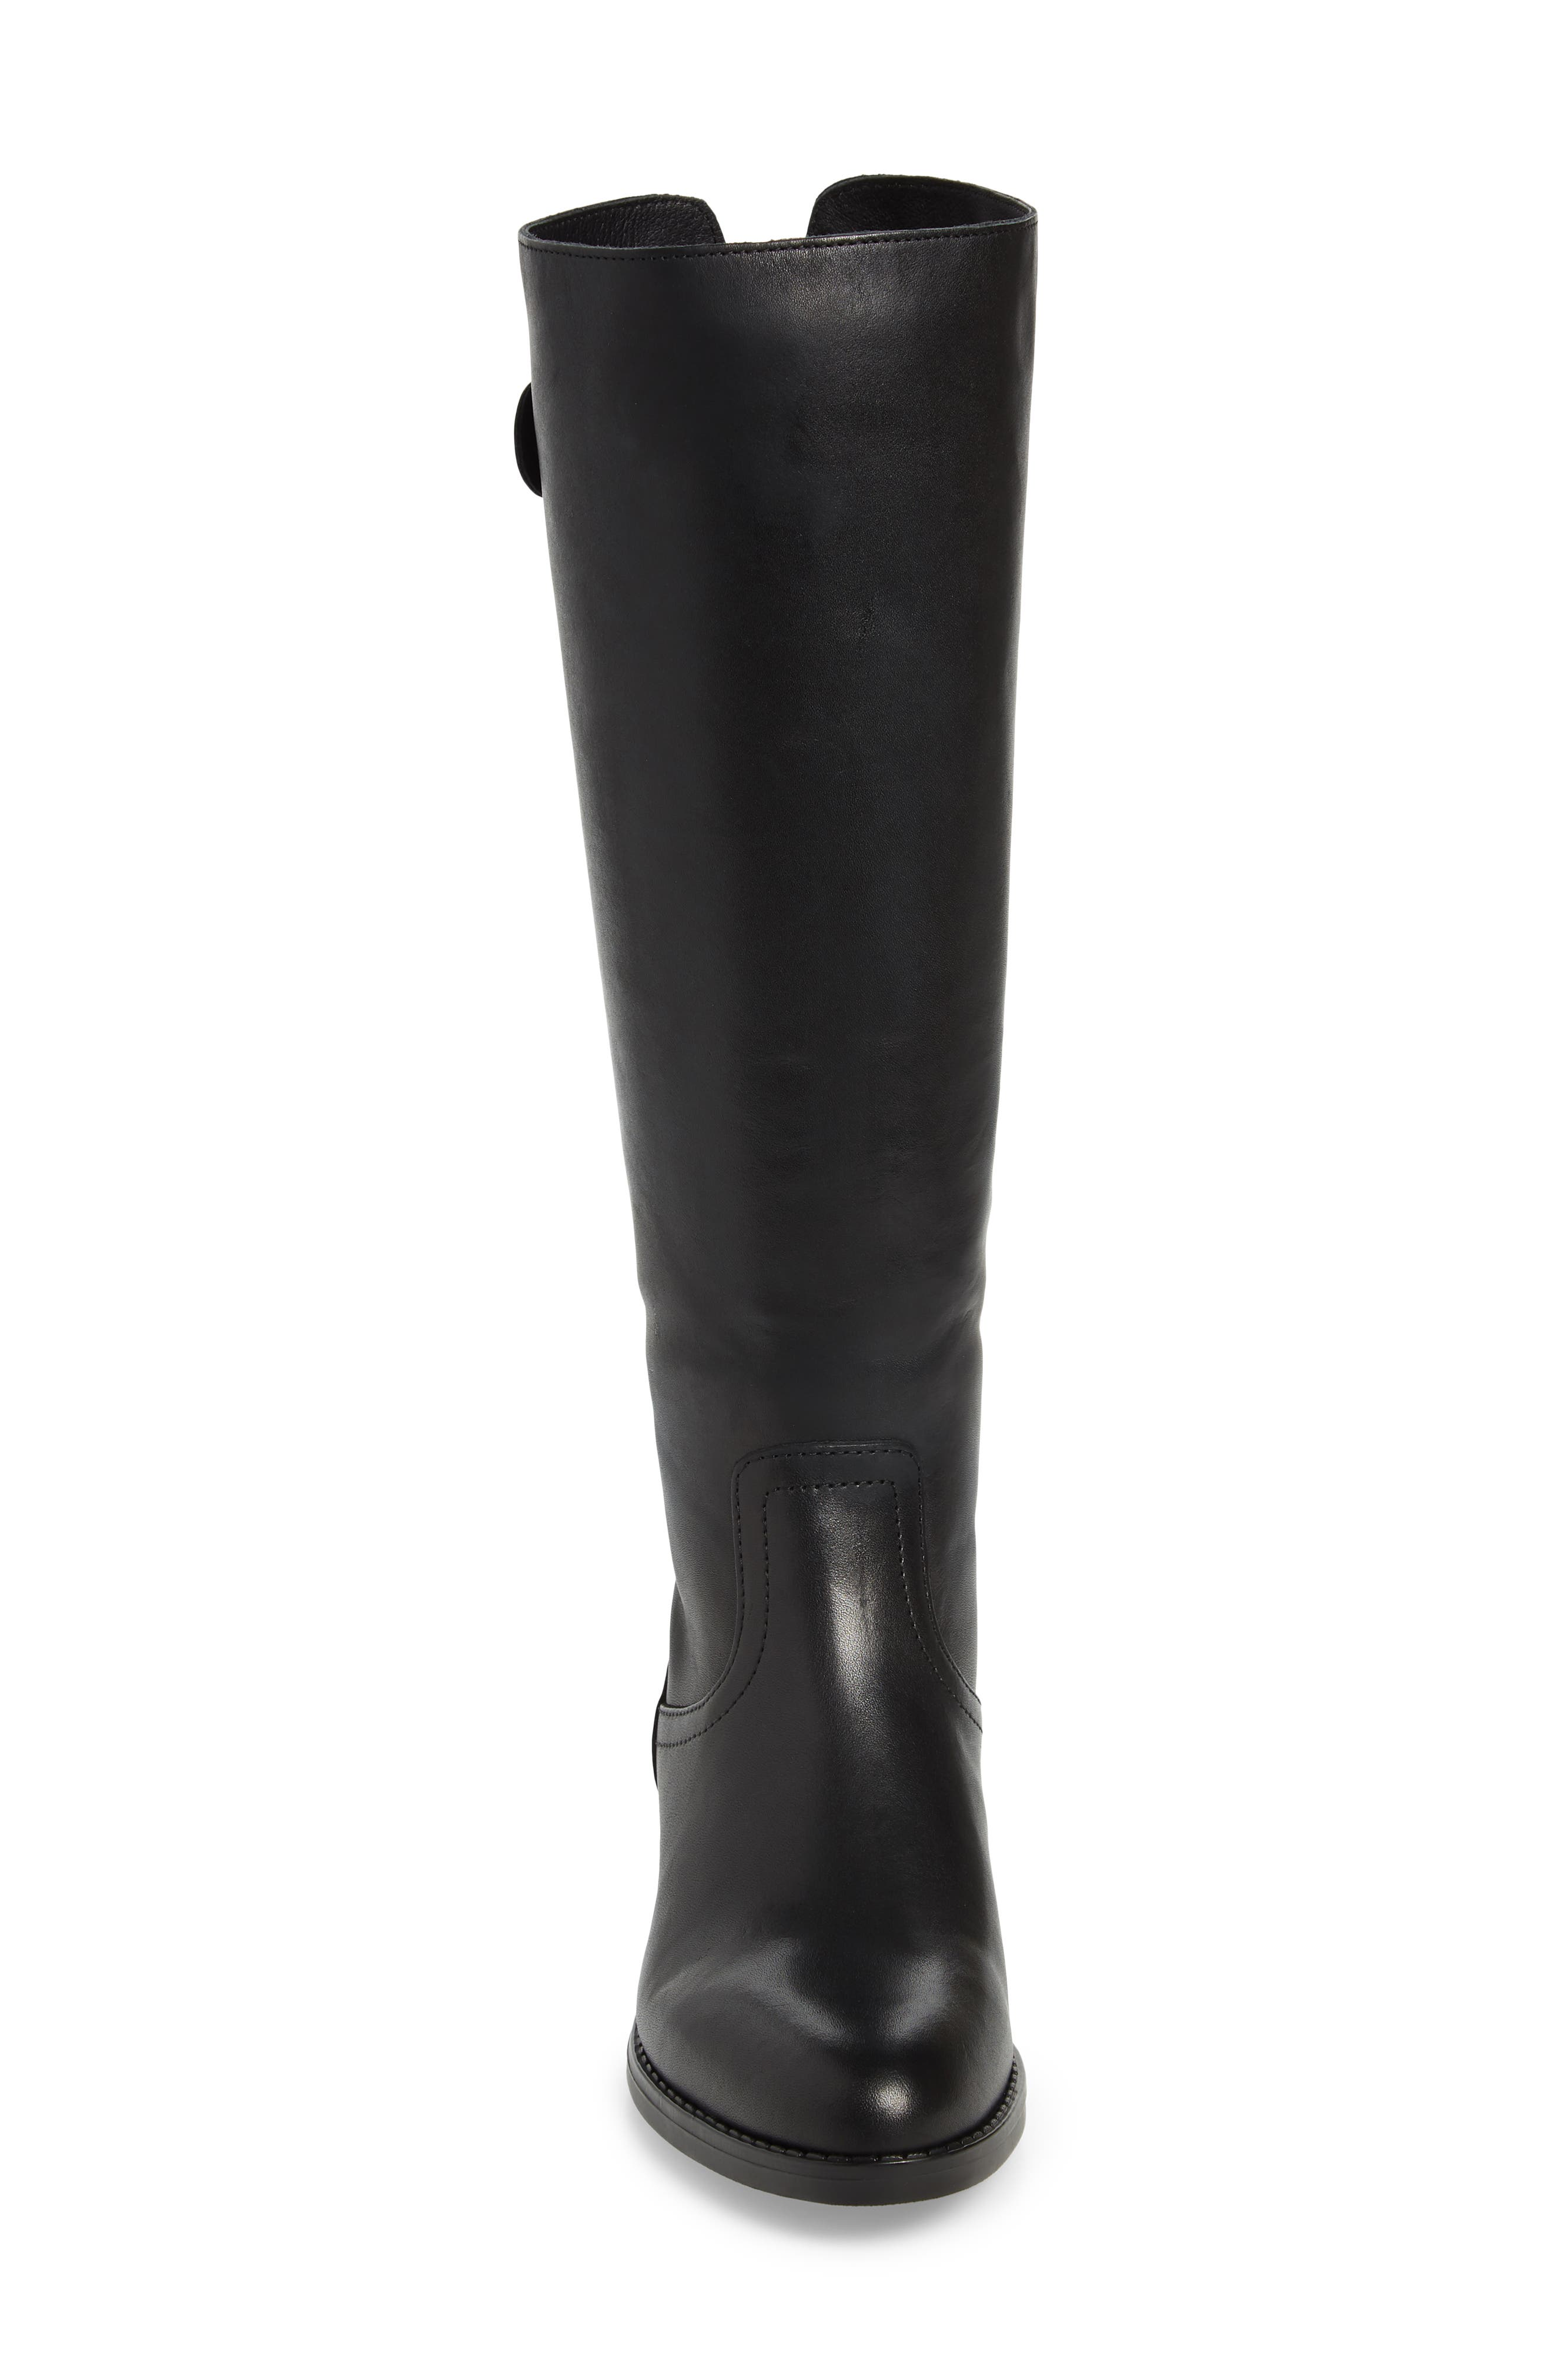 Journal Knee High Boot,                             Alternate thumbnail 4, color,                             BLACK LEATHER